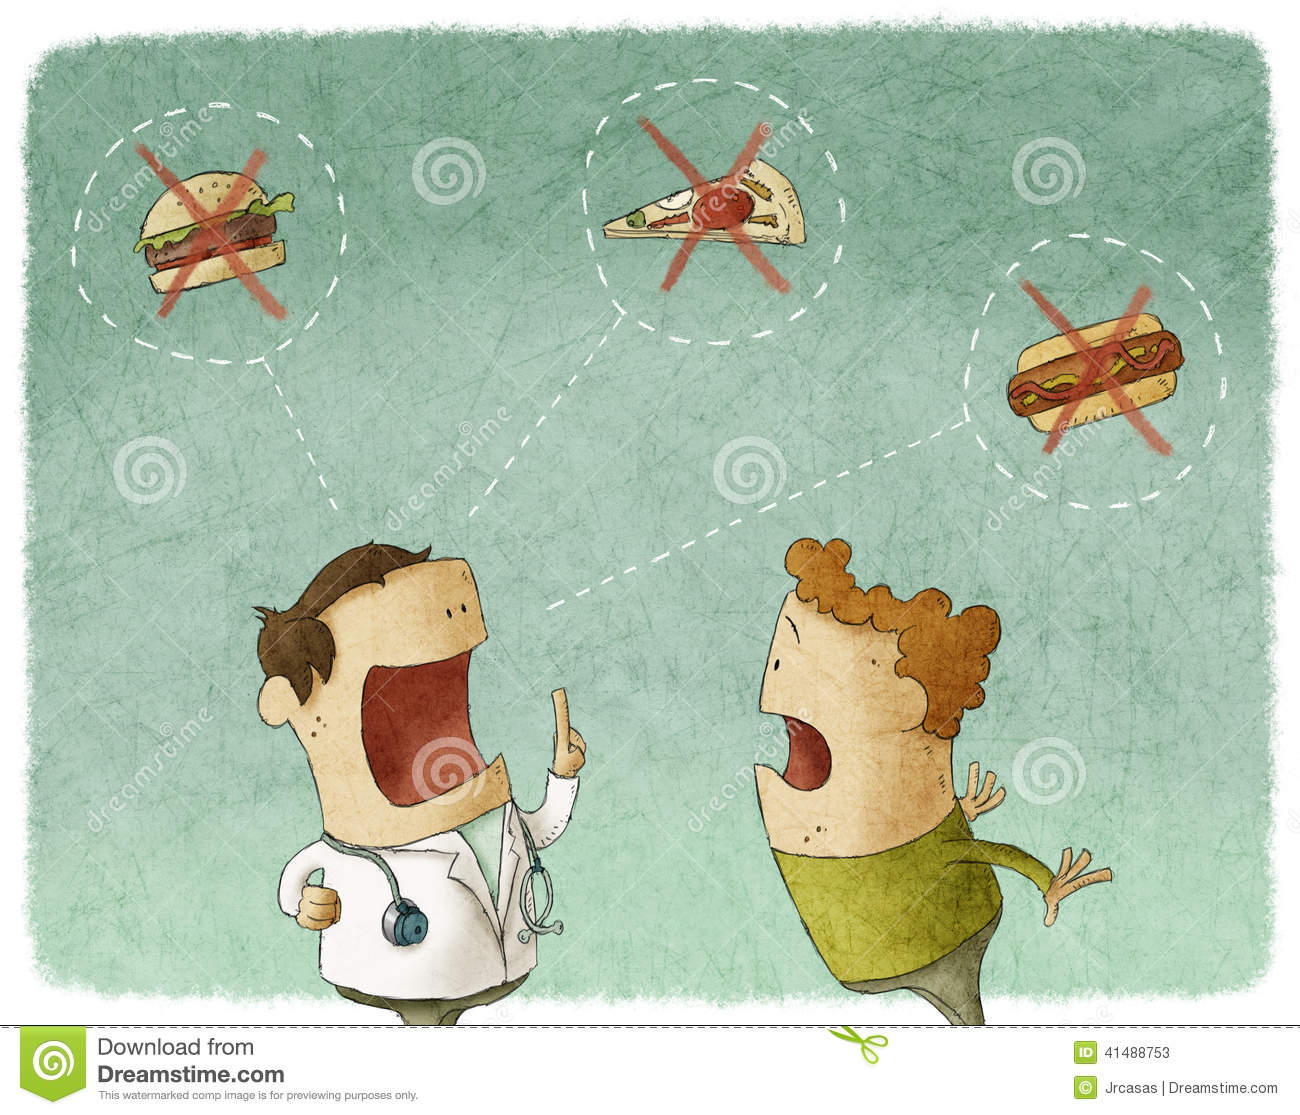 Download Doctor Talking To Patient Not Eat Unhealthy Food Stock Illustration - Illustration of cartoon, green: 41488753